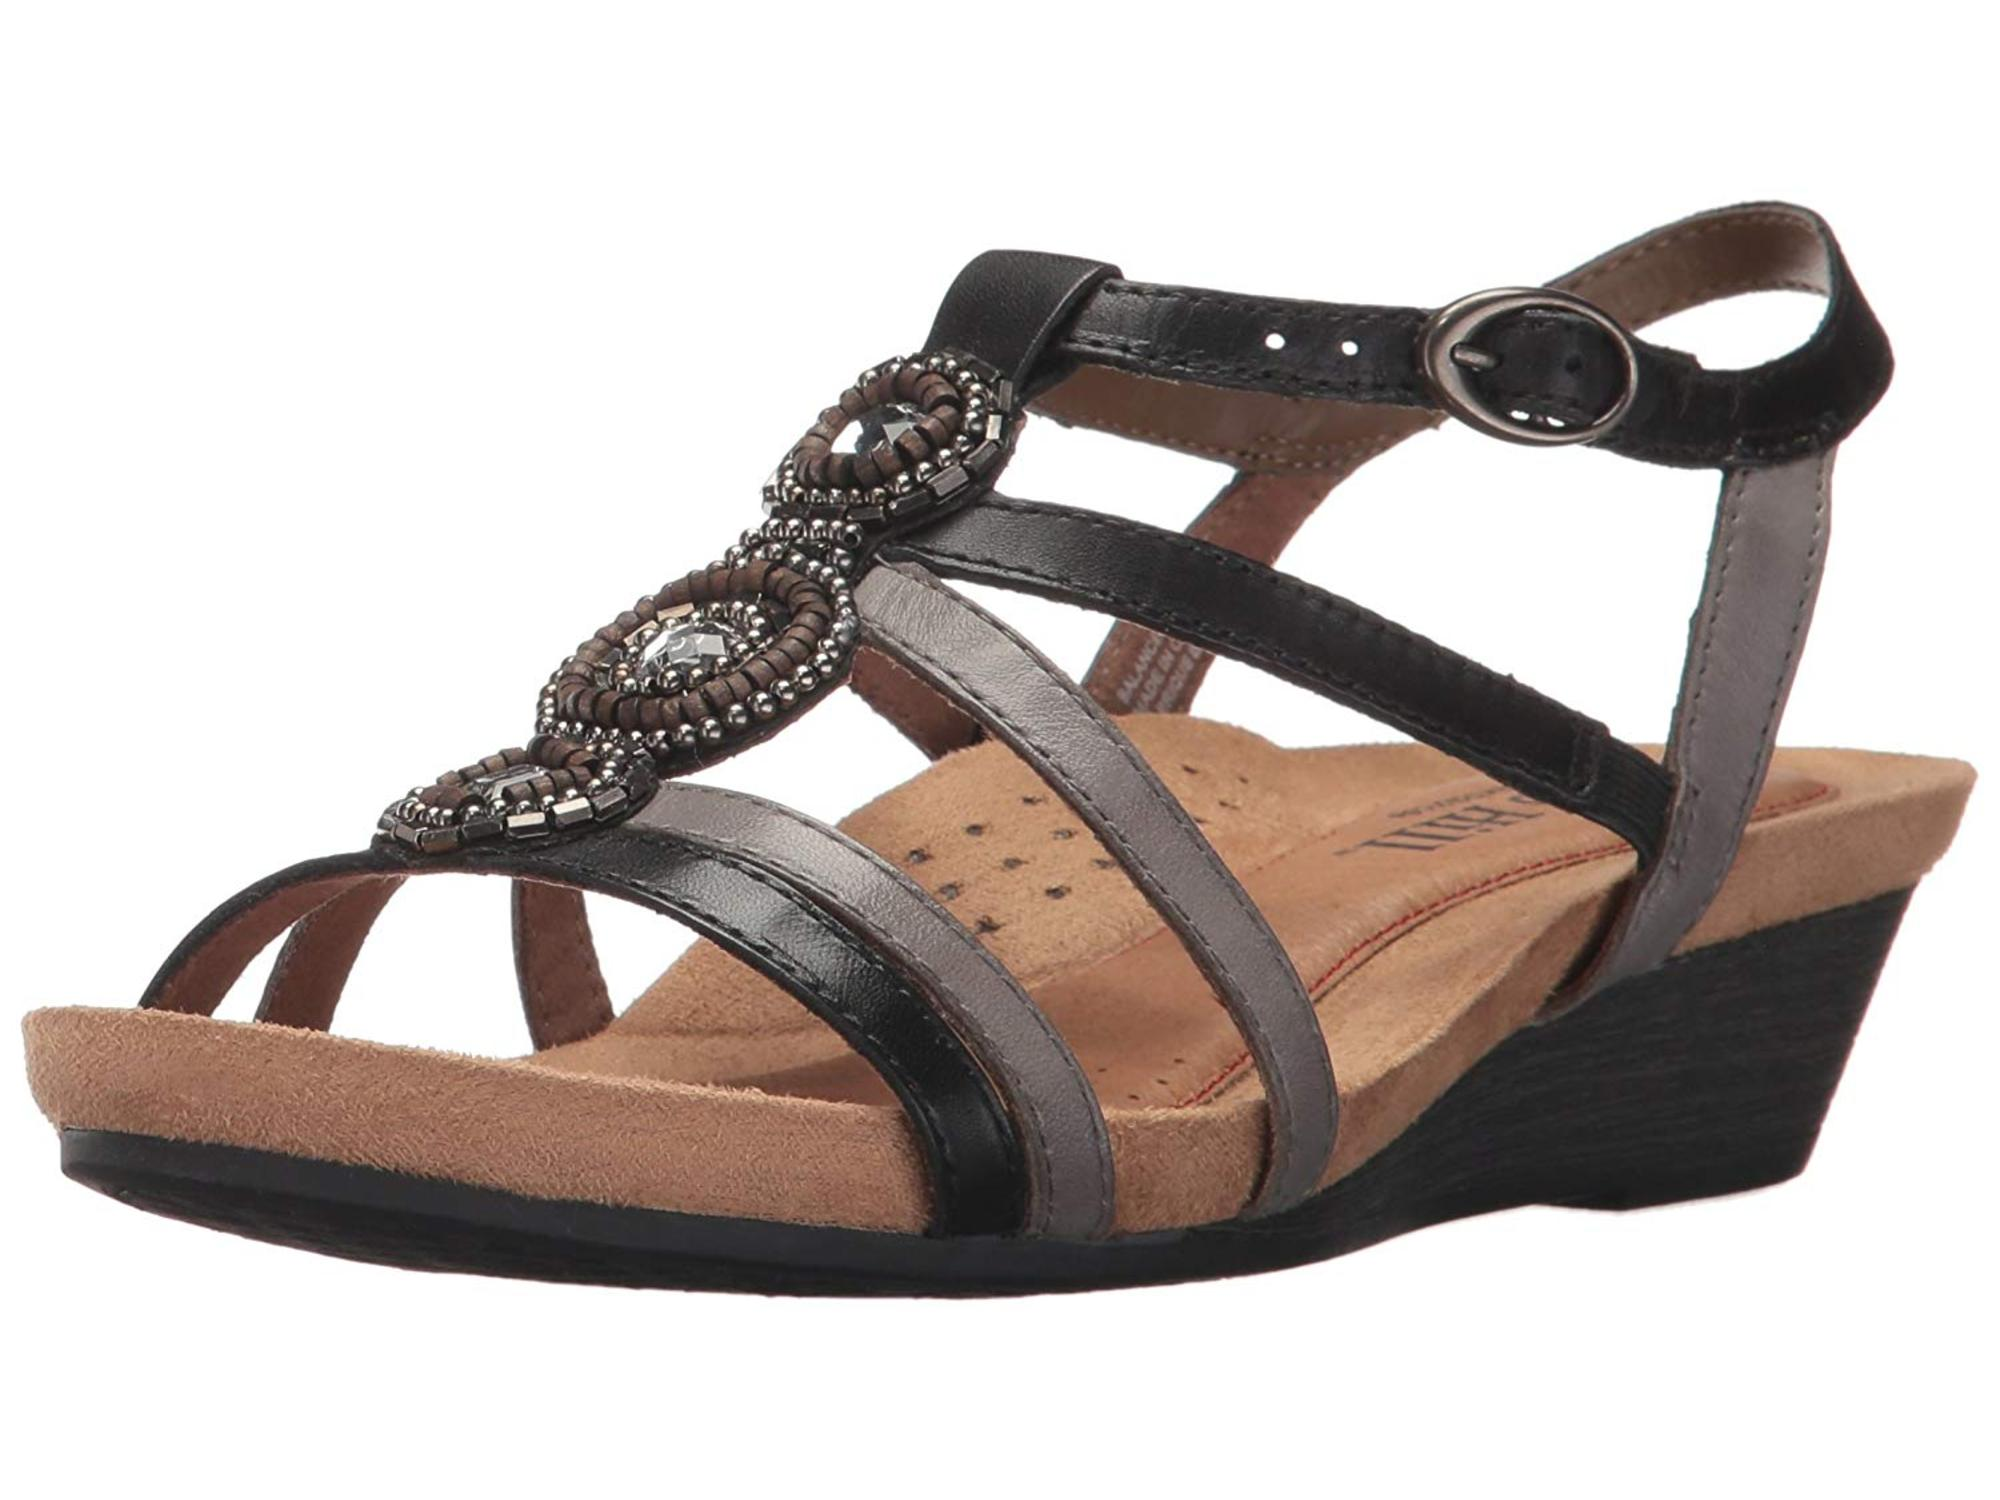 9d54b0d8b16 Cobb hill womens hannah sandal jpg 2000x1500 Cobb hill sandals for women